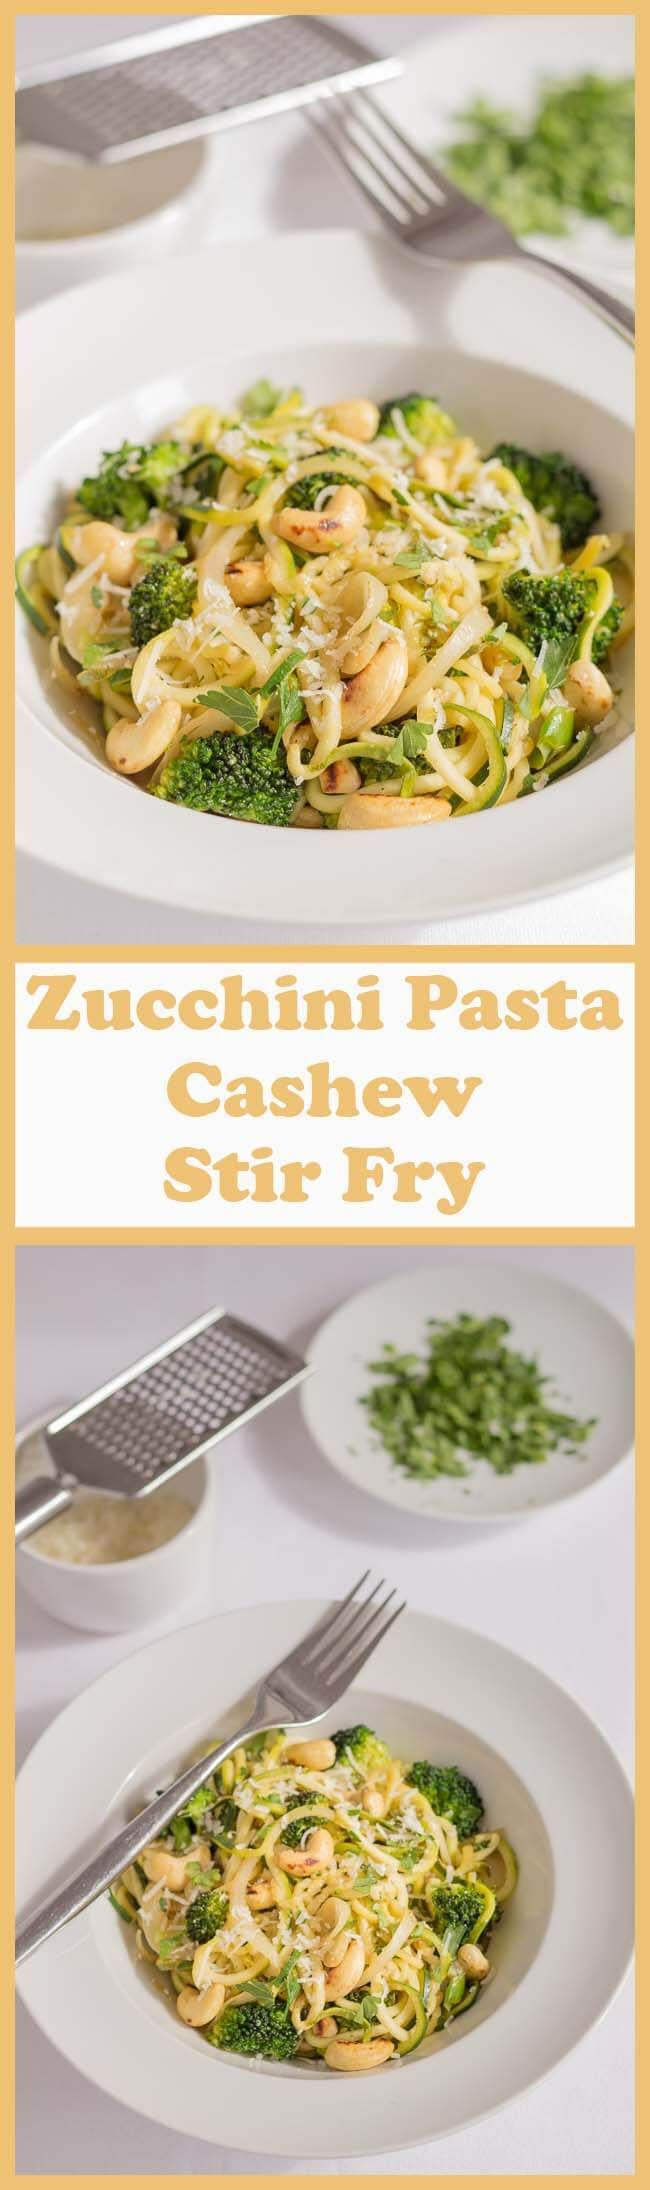 This zucchini pasta cashew stir fry recipe is a quick, healthy and delicious meal. It's vegetarian, gluten free and ideal for those on a low calorie diet!